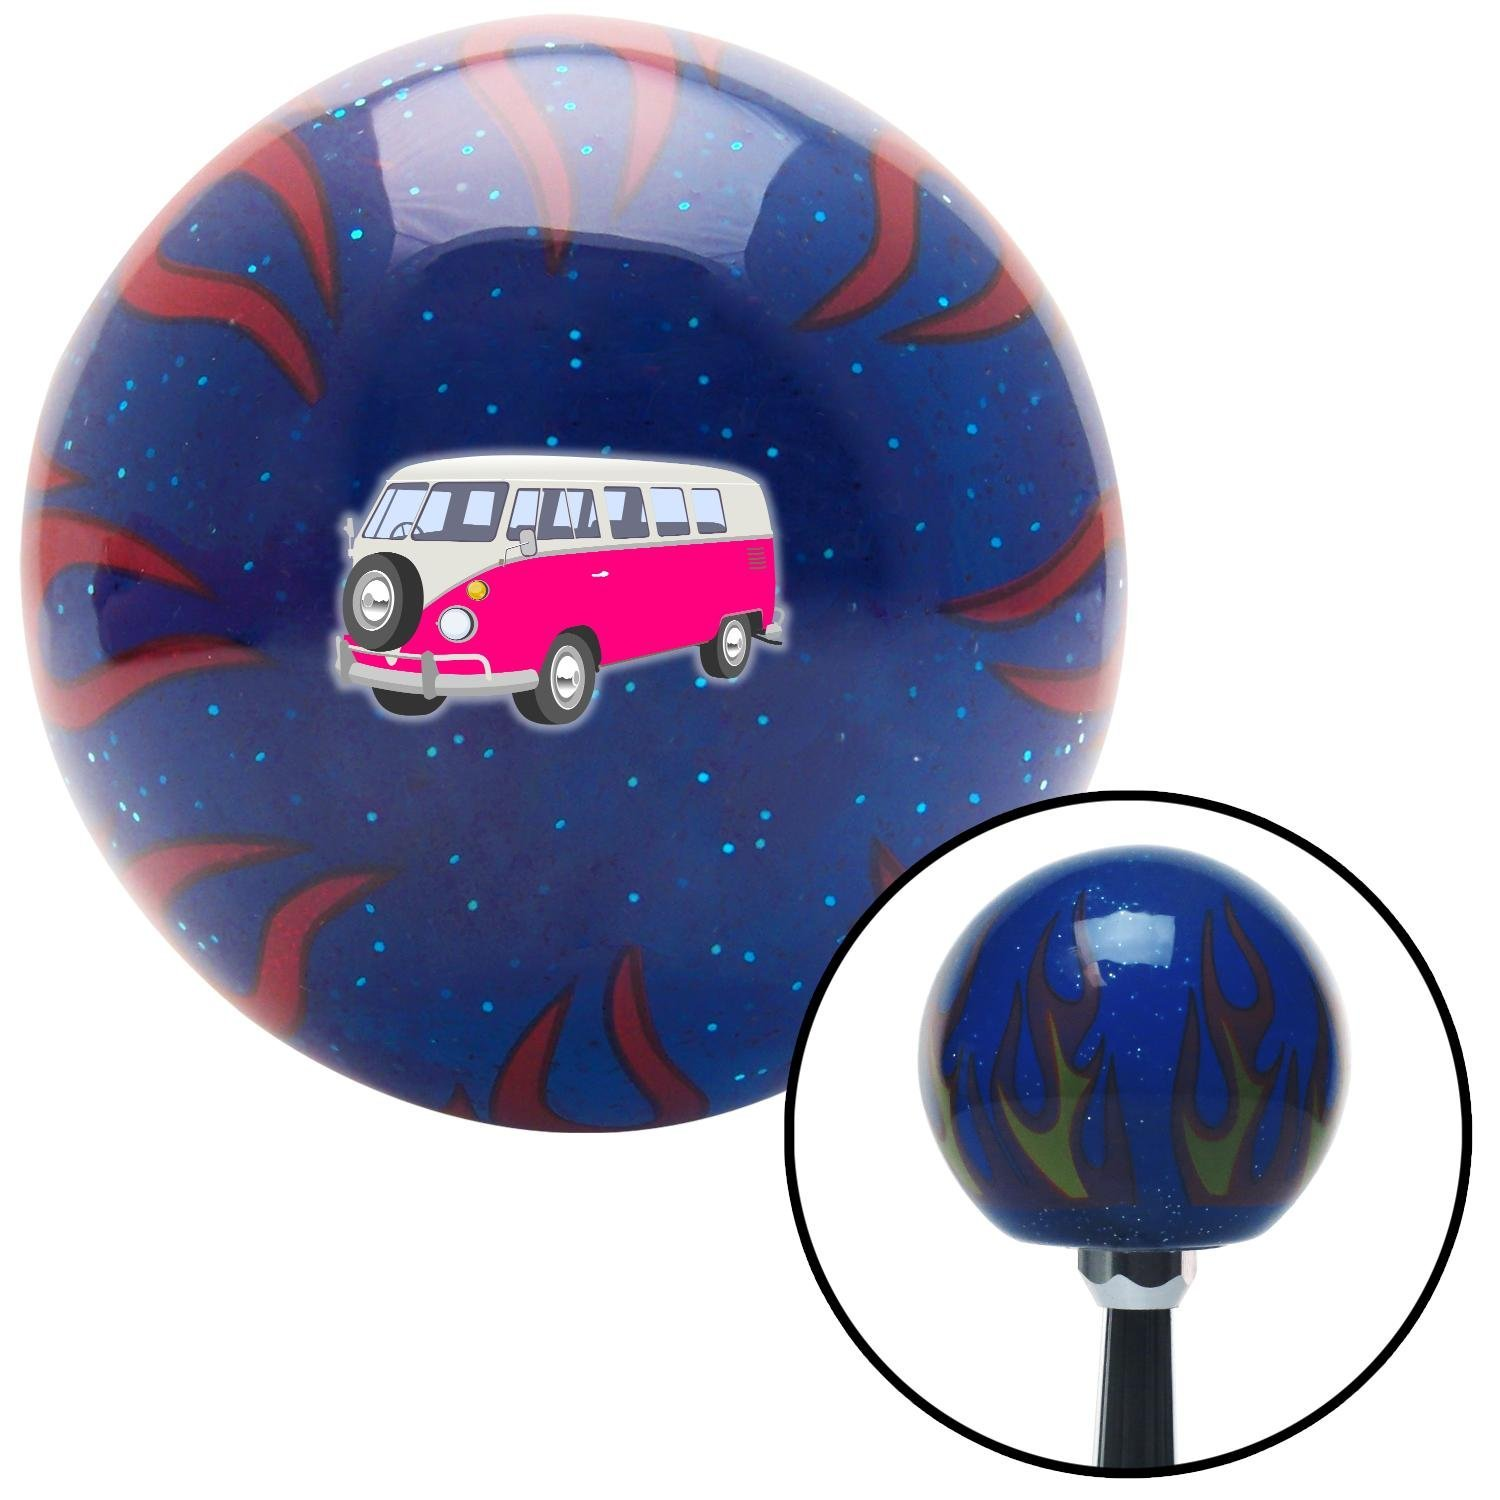 American Shifter 251847 Blue Flame Metal Flake Shift Knob with M16 x 1.5 Insert Pink Camper